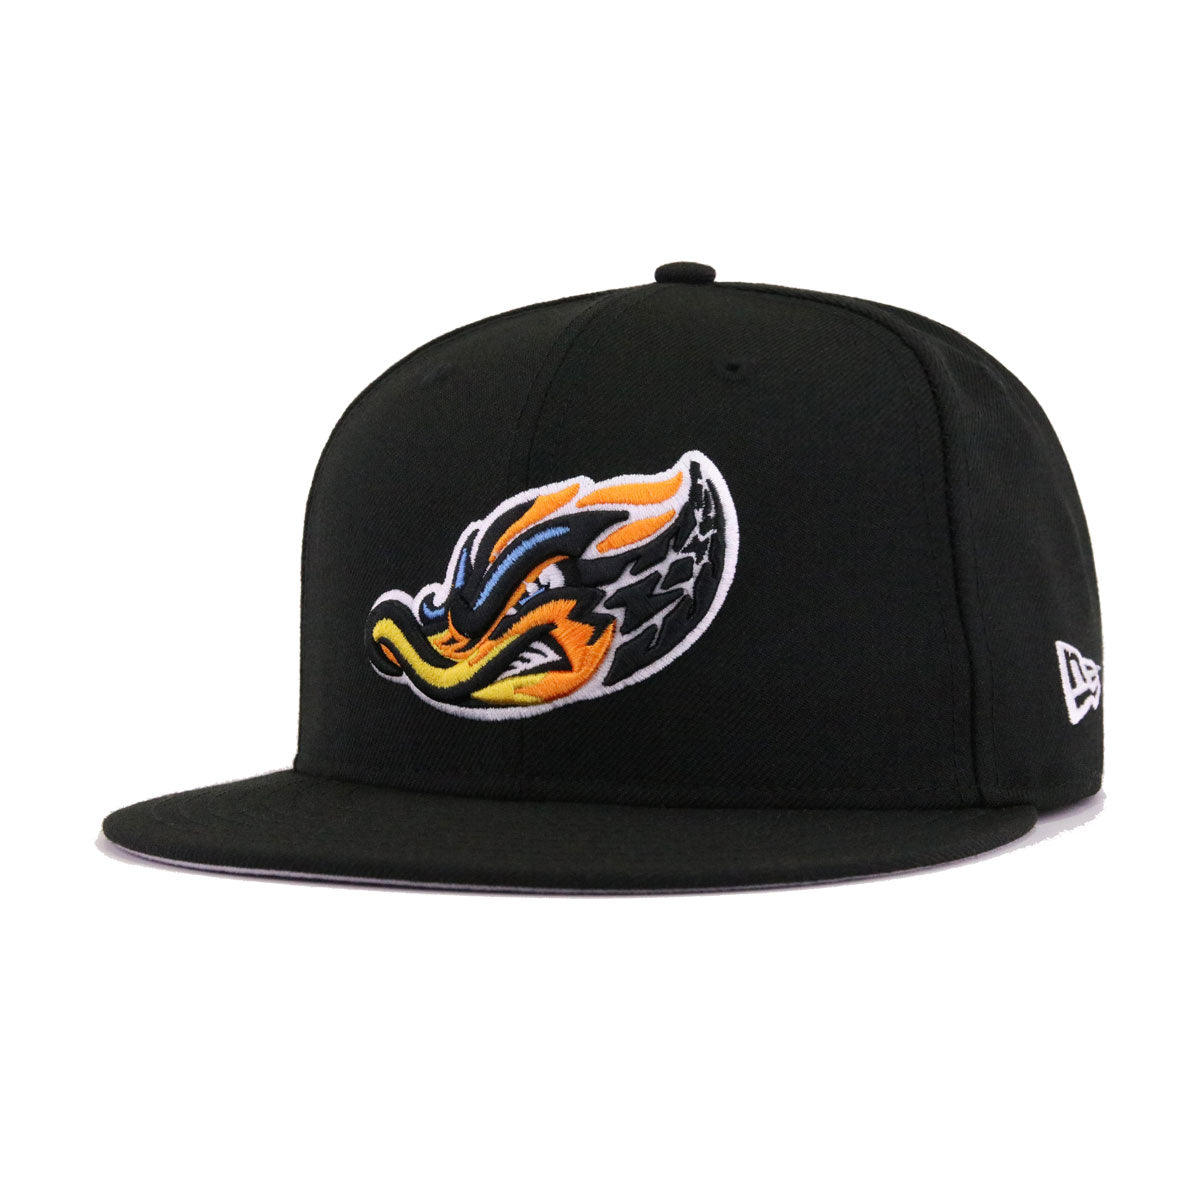 Akron Rubber Ducks Black New Era 9Fifty Snapback